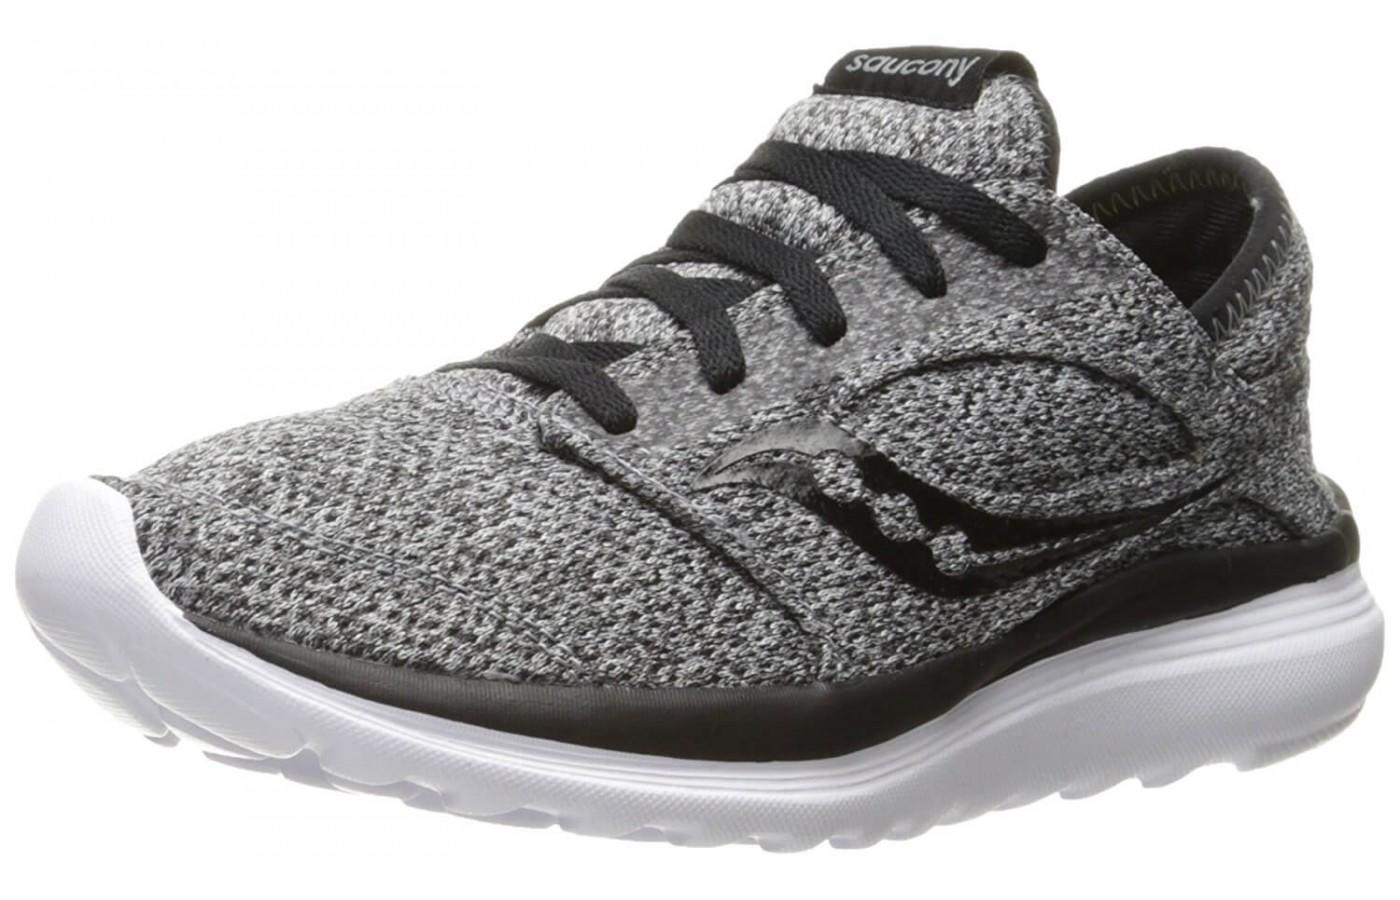 Saucony Kineta Relay in women's heathered grey colorway